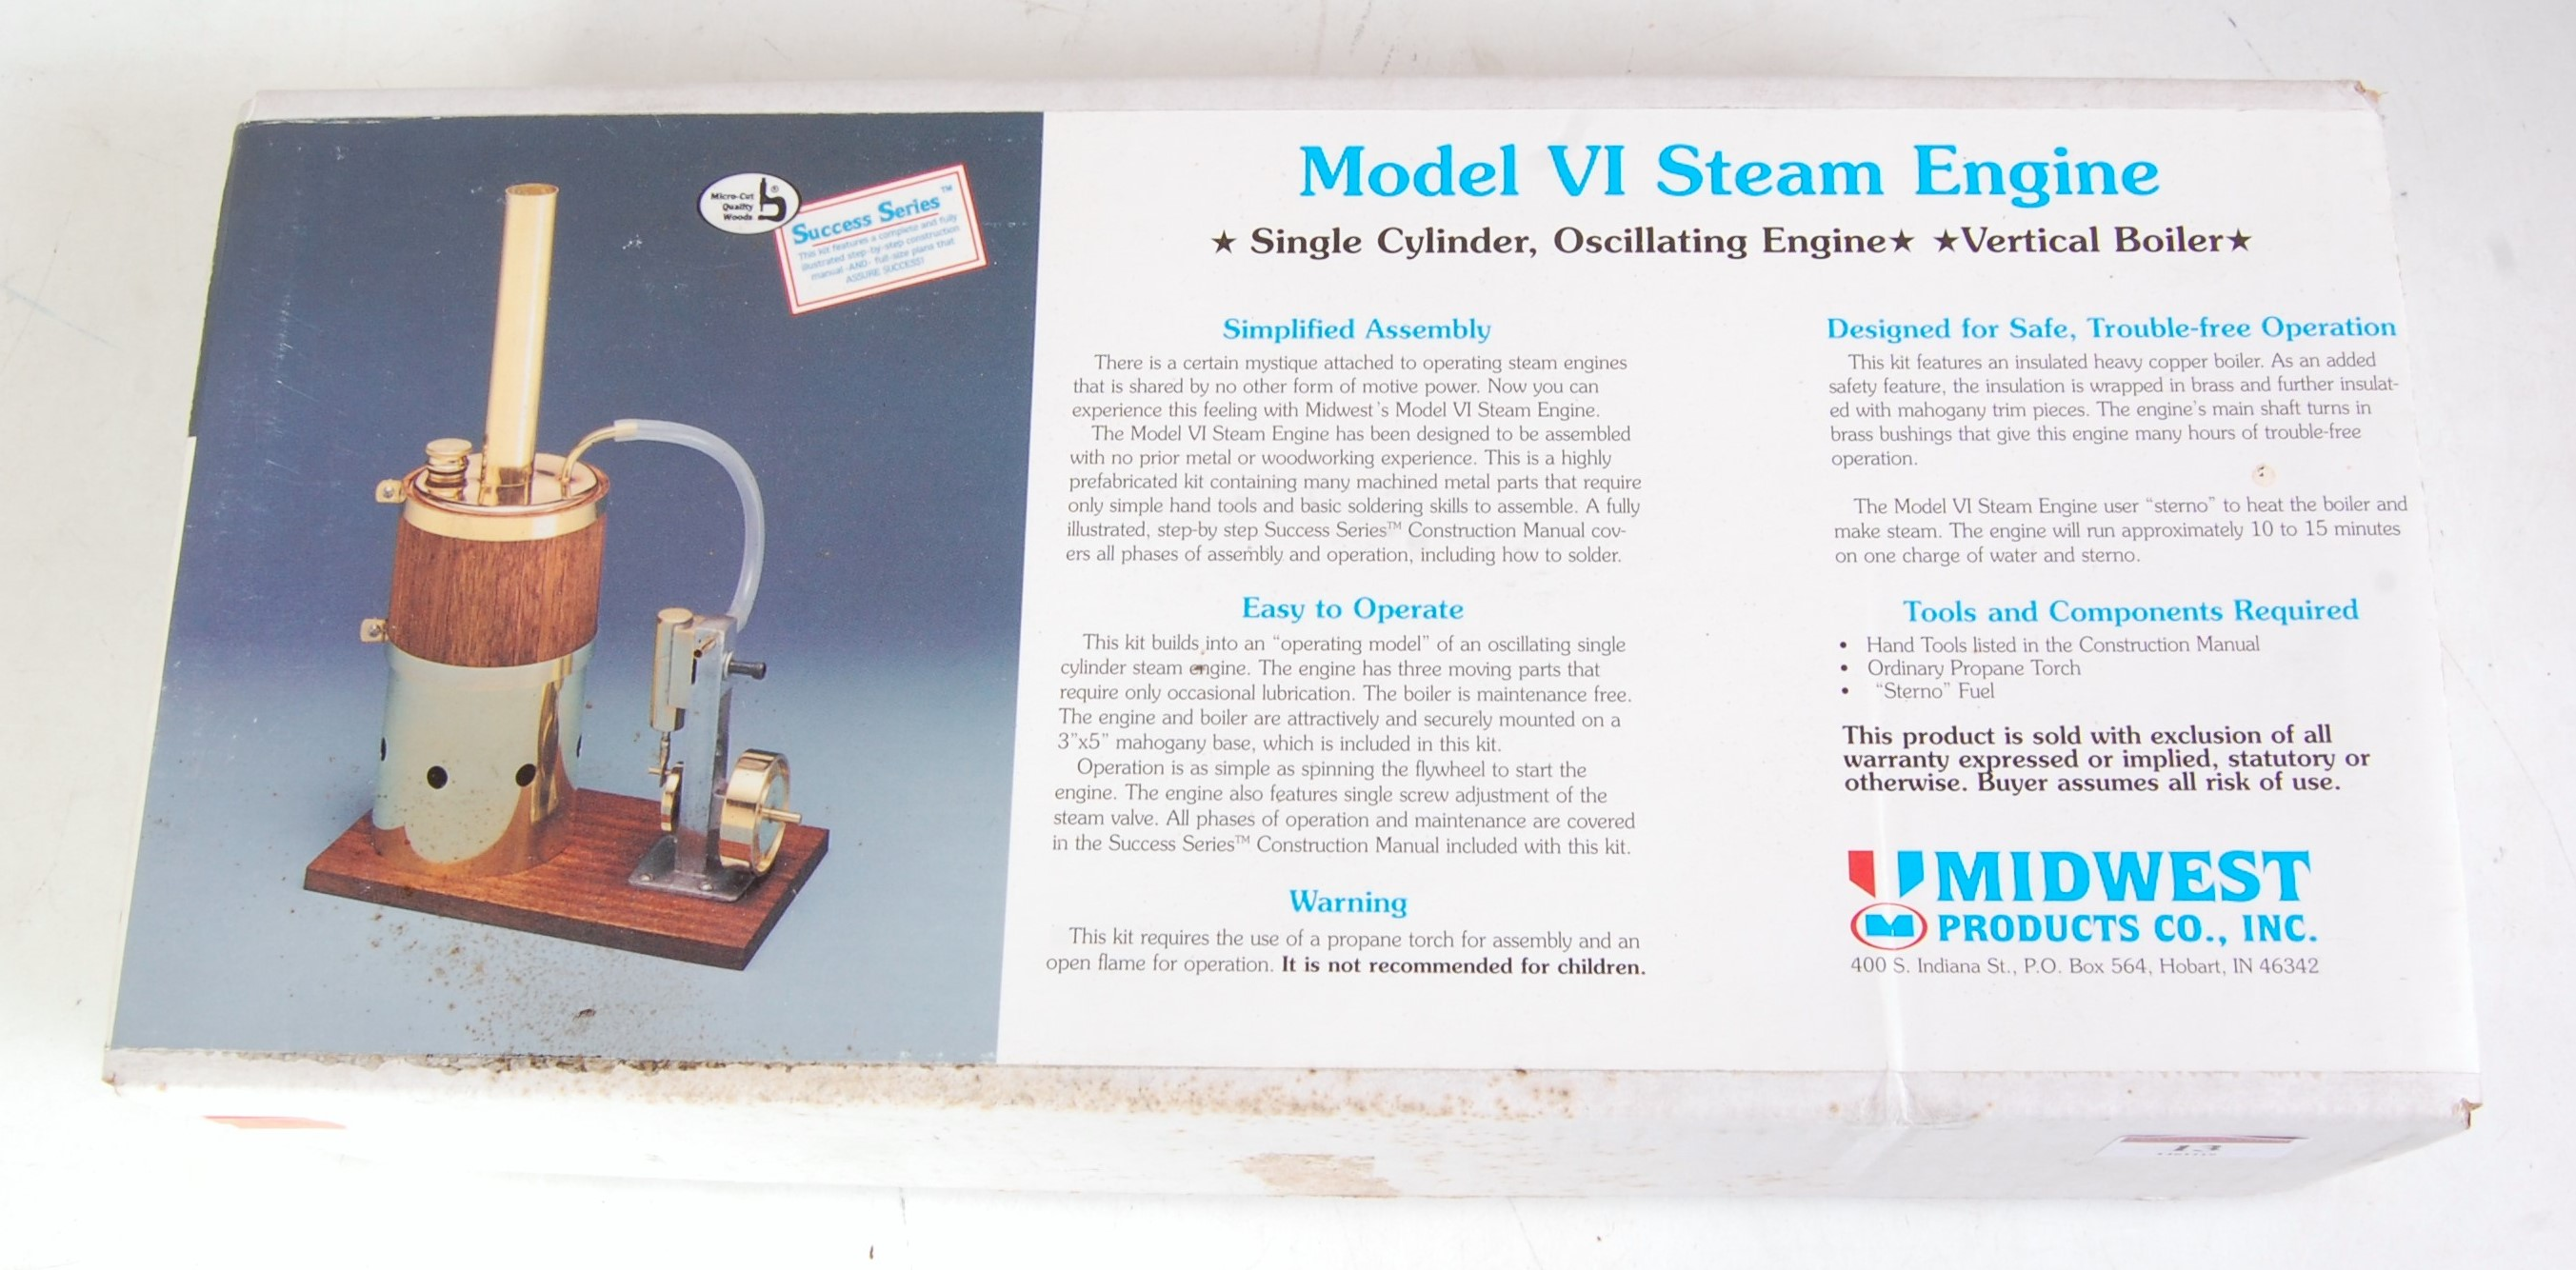 Lot 13 - A Mid West Products simple assembly kit for a model 6 Steam Engine, appears as issued in the